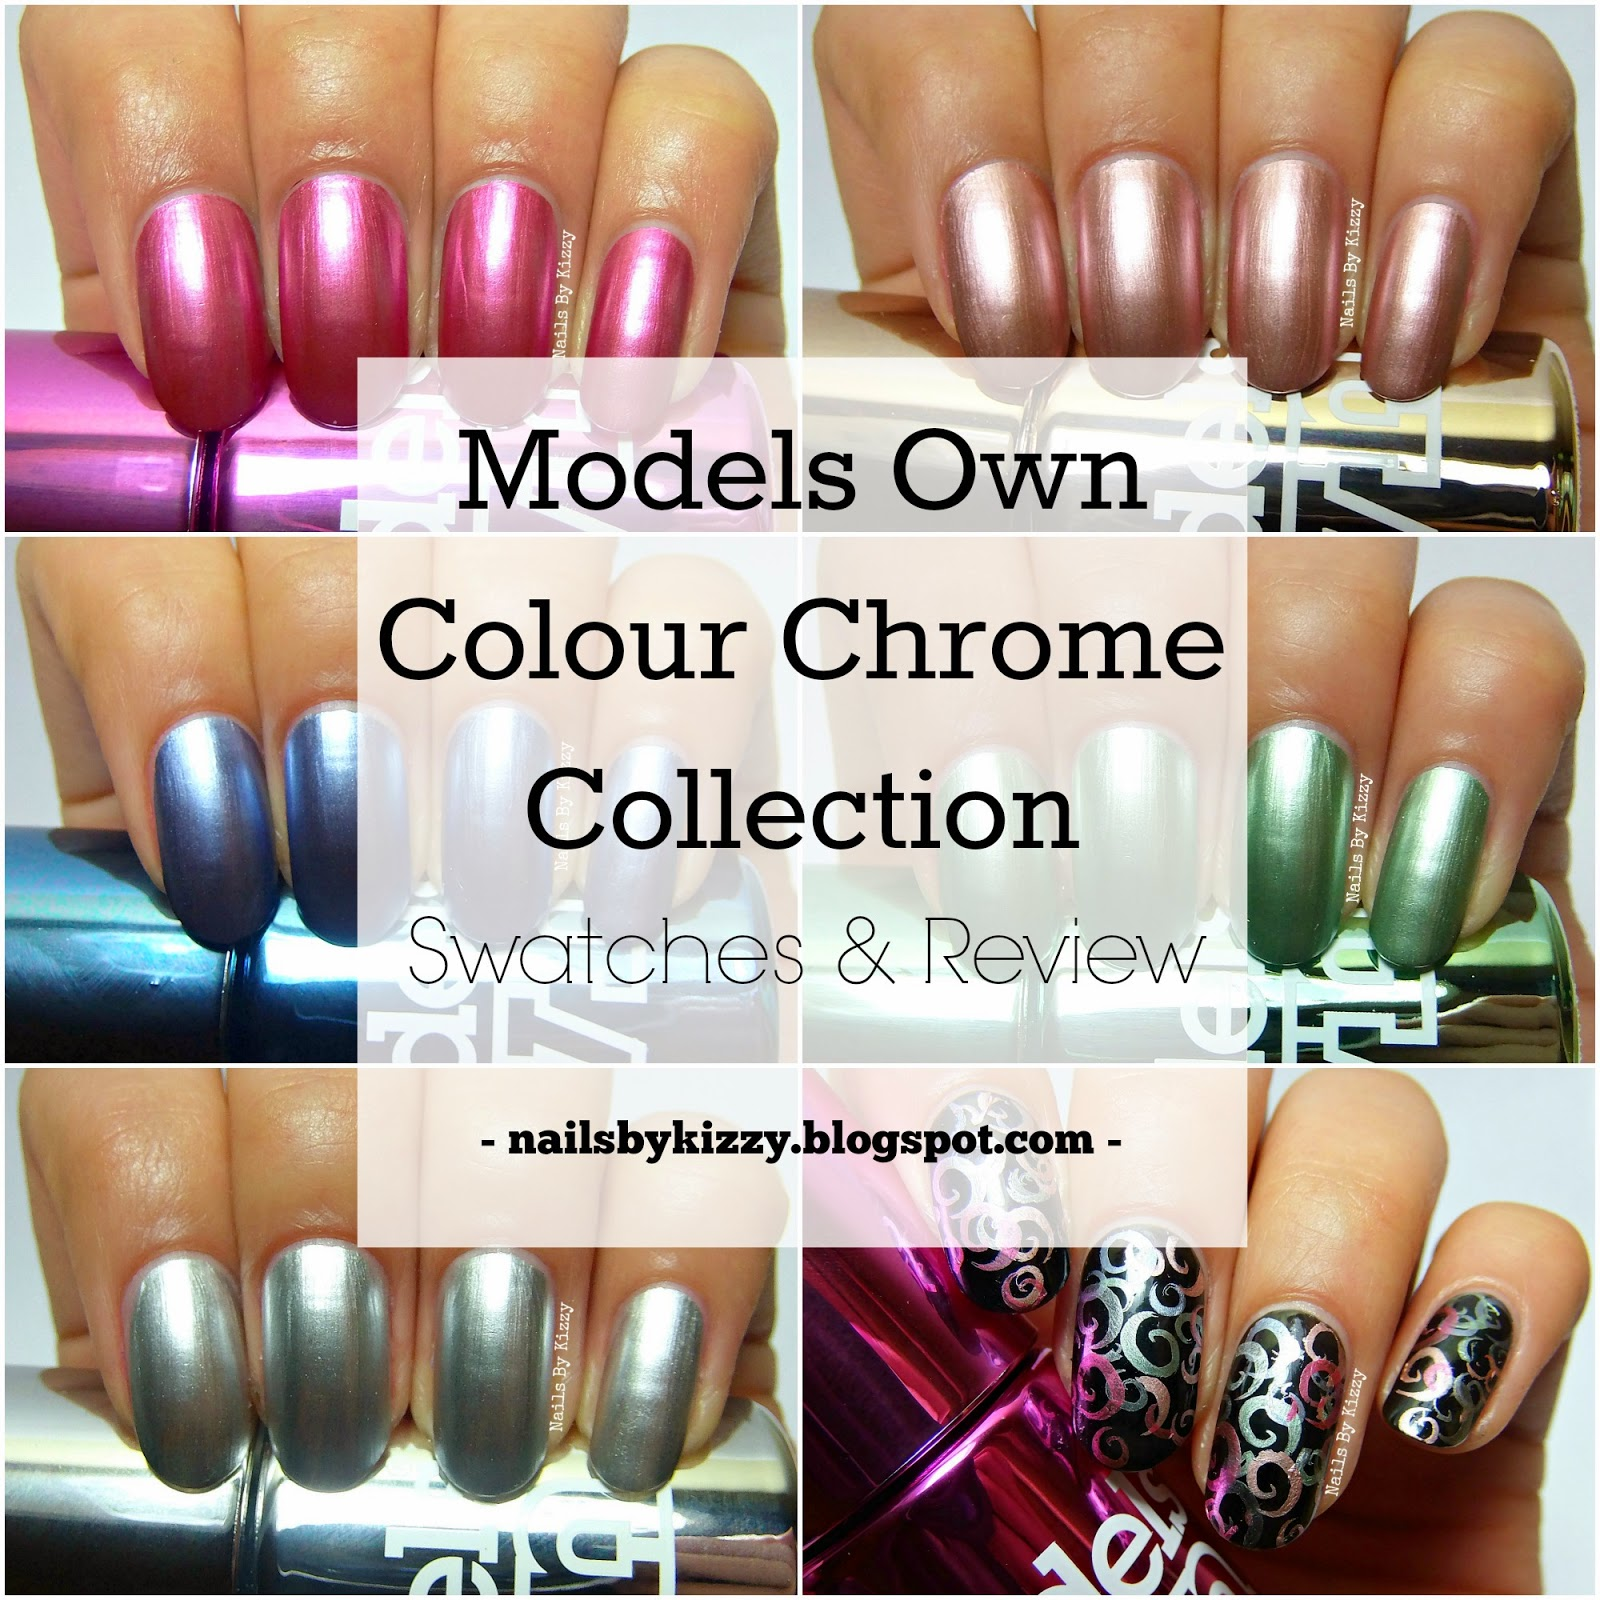 Nails By Kizzy: Models Own Colour Chrome Collection